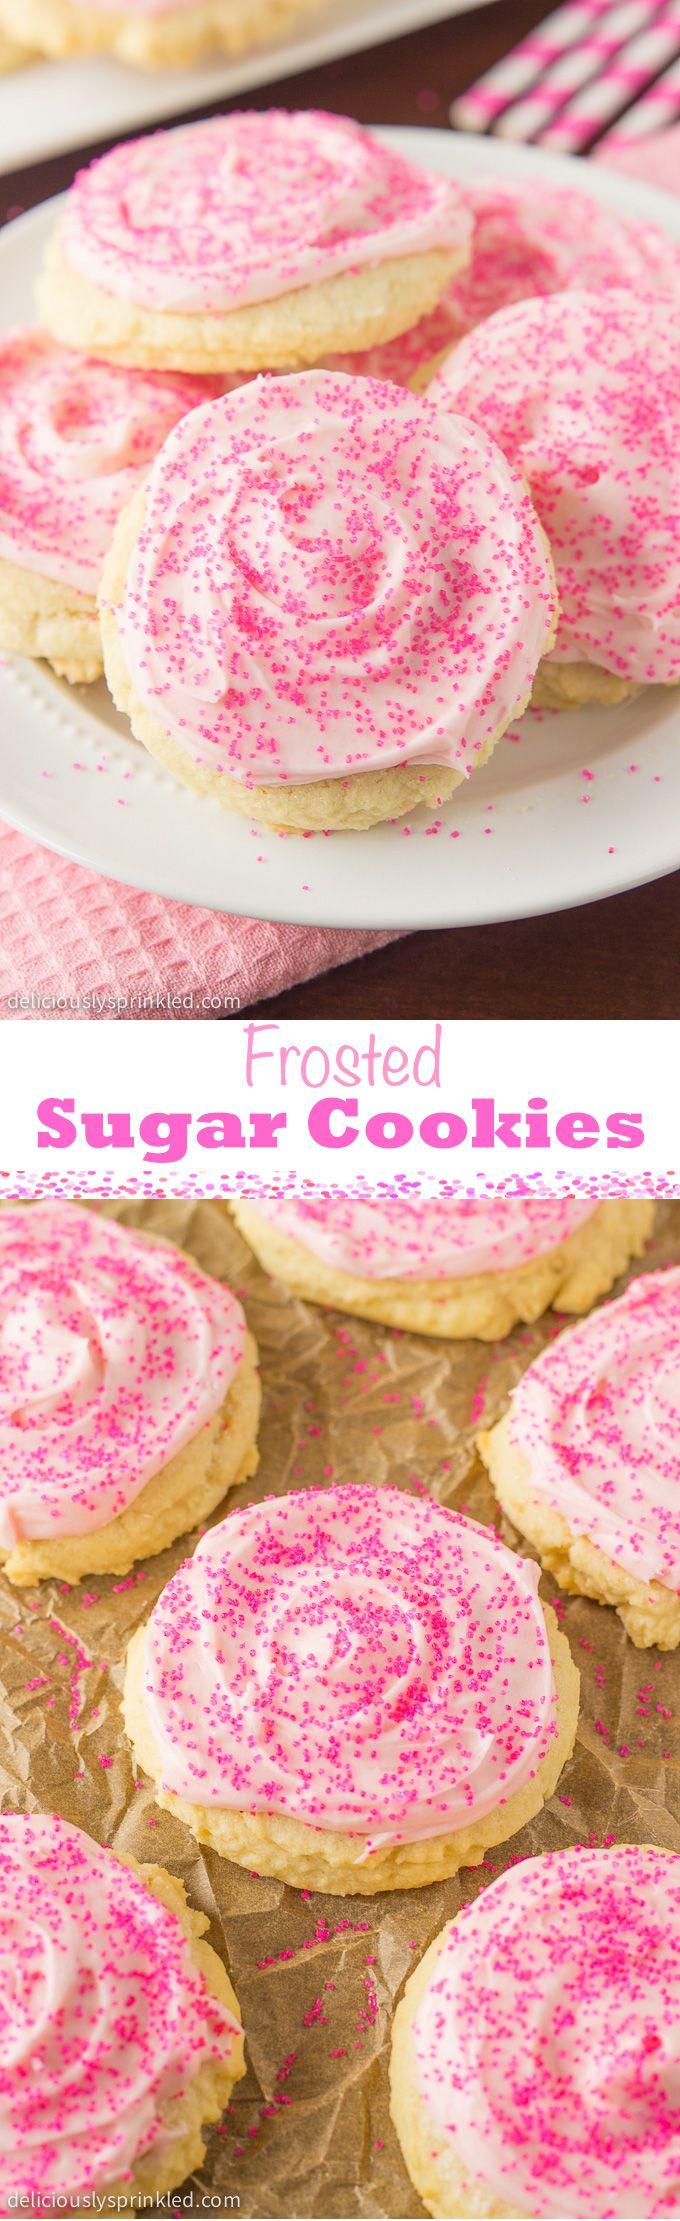 Frosted Sugar Cookies Ingredientes Vegetarian Refrigerados 3 Egg yolks Repostería y especias 2 1/2 cups All-purpose flour 1 tsp Baking powder 3/4 tsp Baking soda 1 1/2 cup Granulated sugar 1 Pink food coloring 2 1/2 cups Powdered sugar 1 Sprinkles 1 tsp Vanilla extract 1 tbsp Vanilla extract, pure Lácteos 1 cup Butter, salted 1 (2 sticks) cup Butter, unsalted 1 tbsp Heavy whipping cream